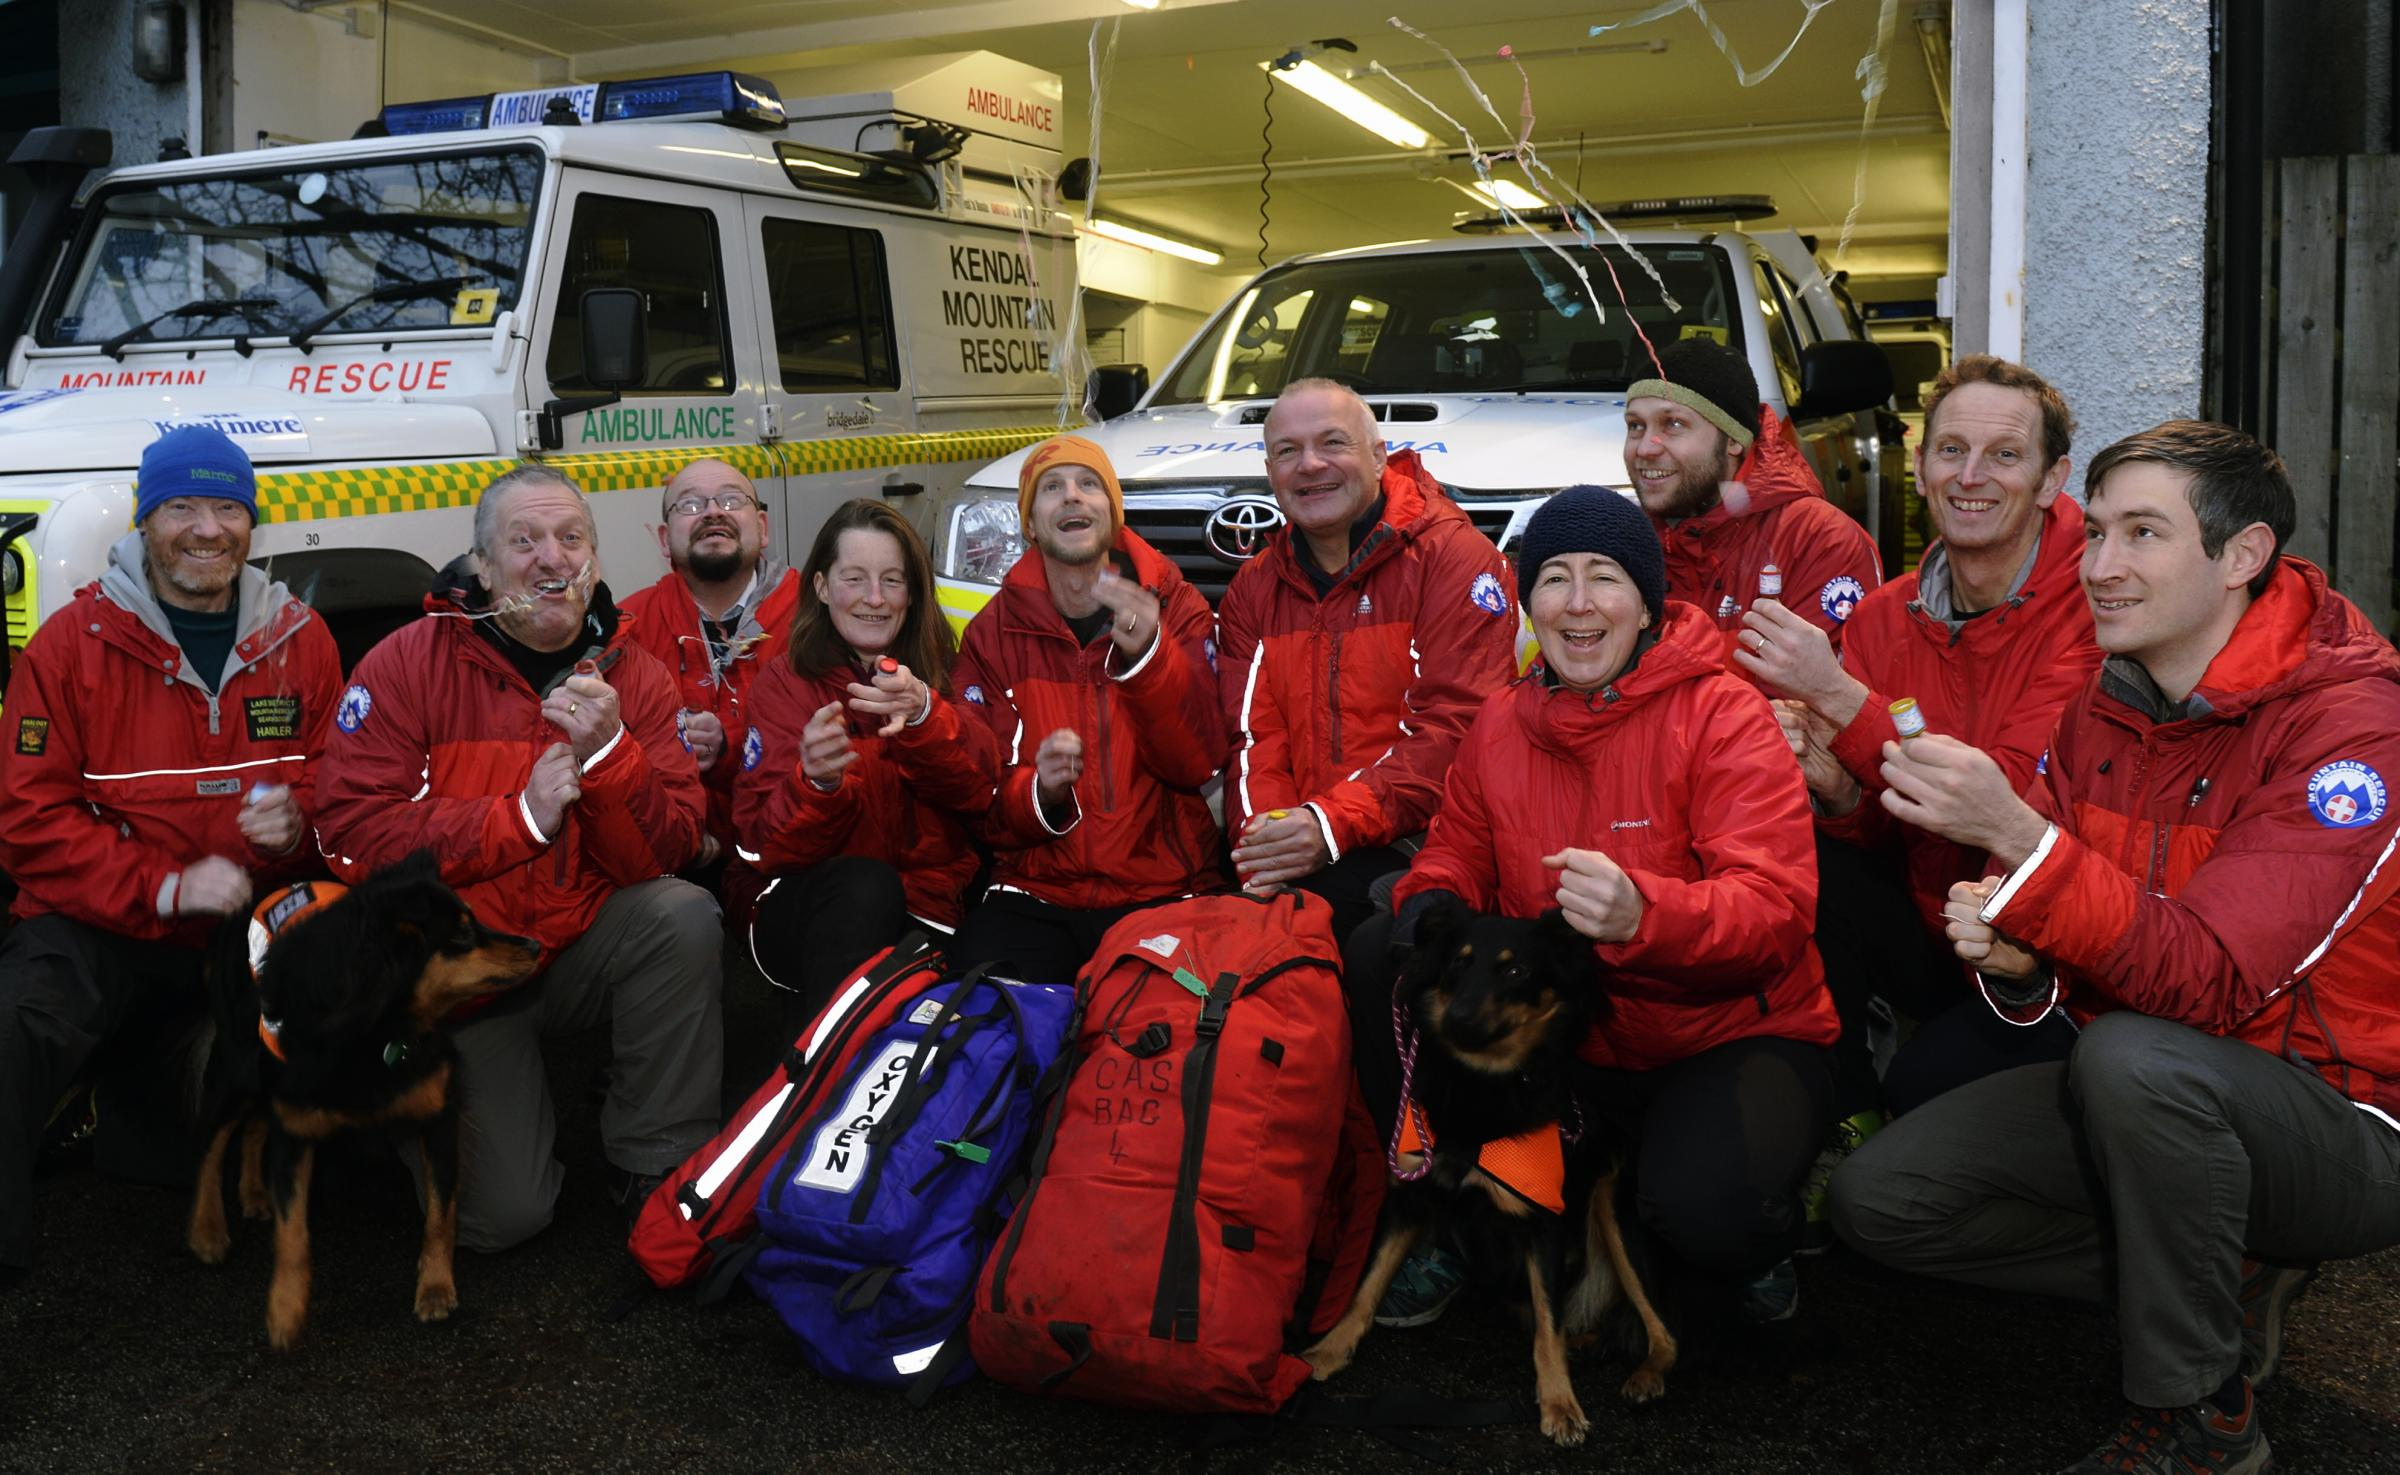 Kendal Mountain Rescue Team celebrates after reaching the £40,000 fund-raising tagert for a new mobile base - made possible partly by a Gannett Foundation grant